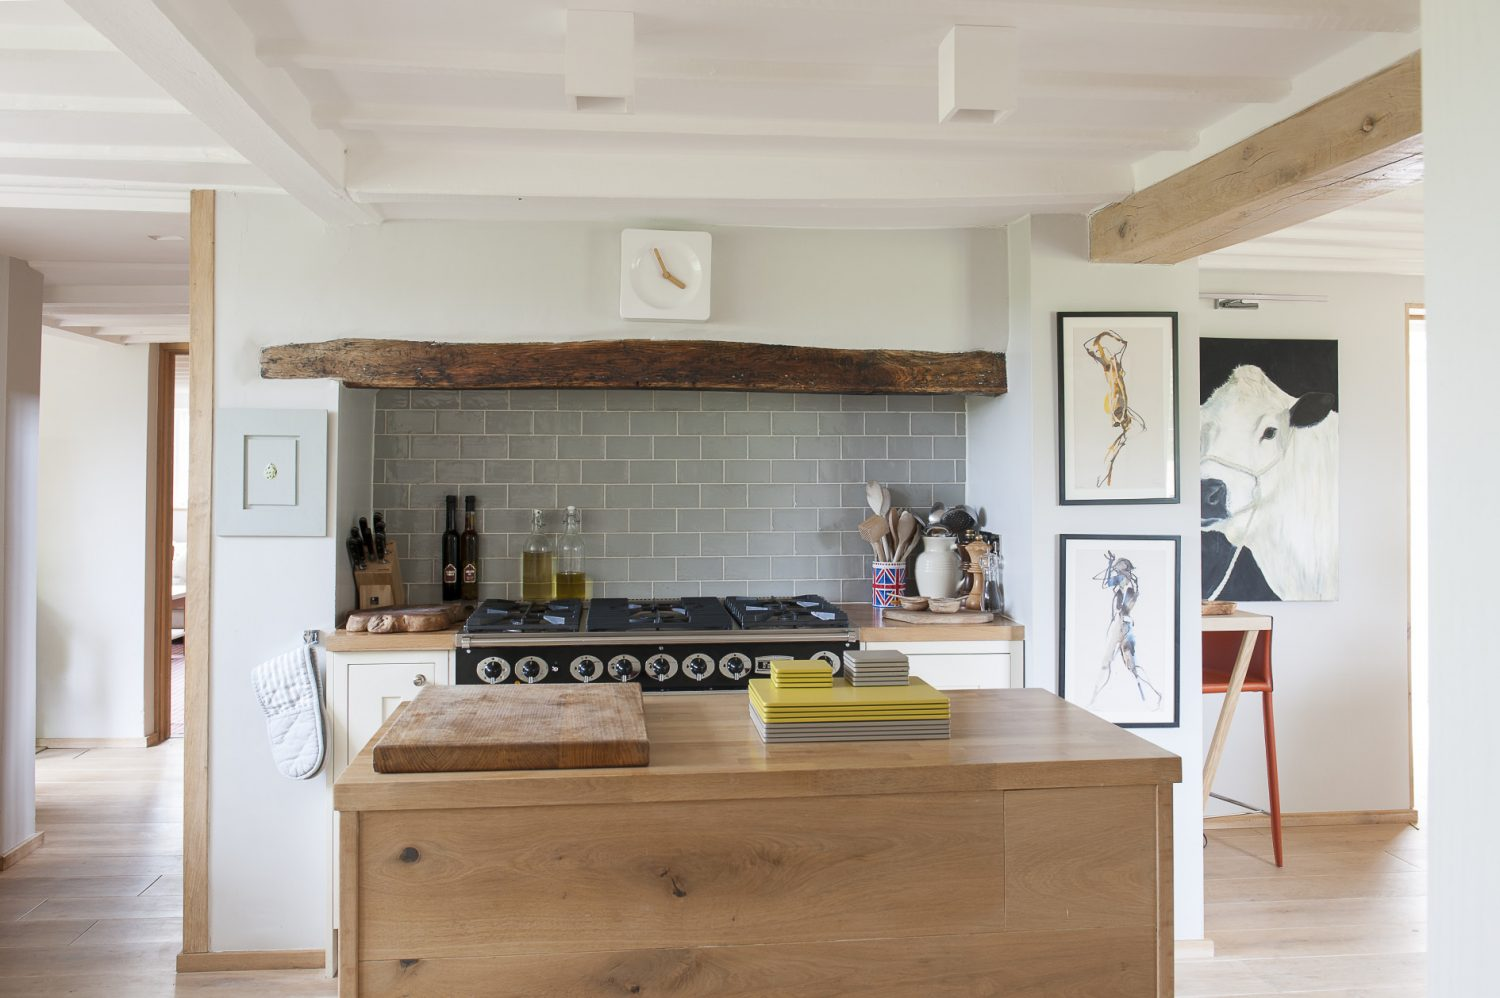 The light-filled kitchen once had an unreliable old Aga at its heart – since replaced by a range cooker. The kitchen units are by Howdens and are complemented by light, machined-oak floorboards. Martine and Andrew are big fans of the artist Bella Pieroni whose pictures hang to the right of the cooker